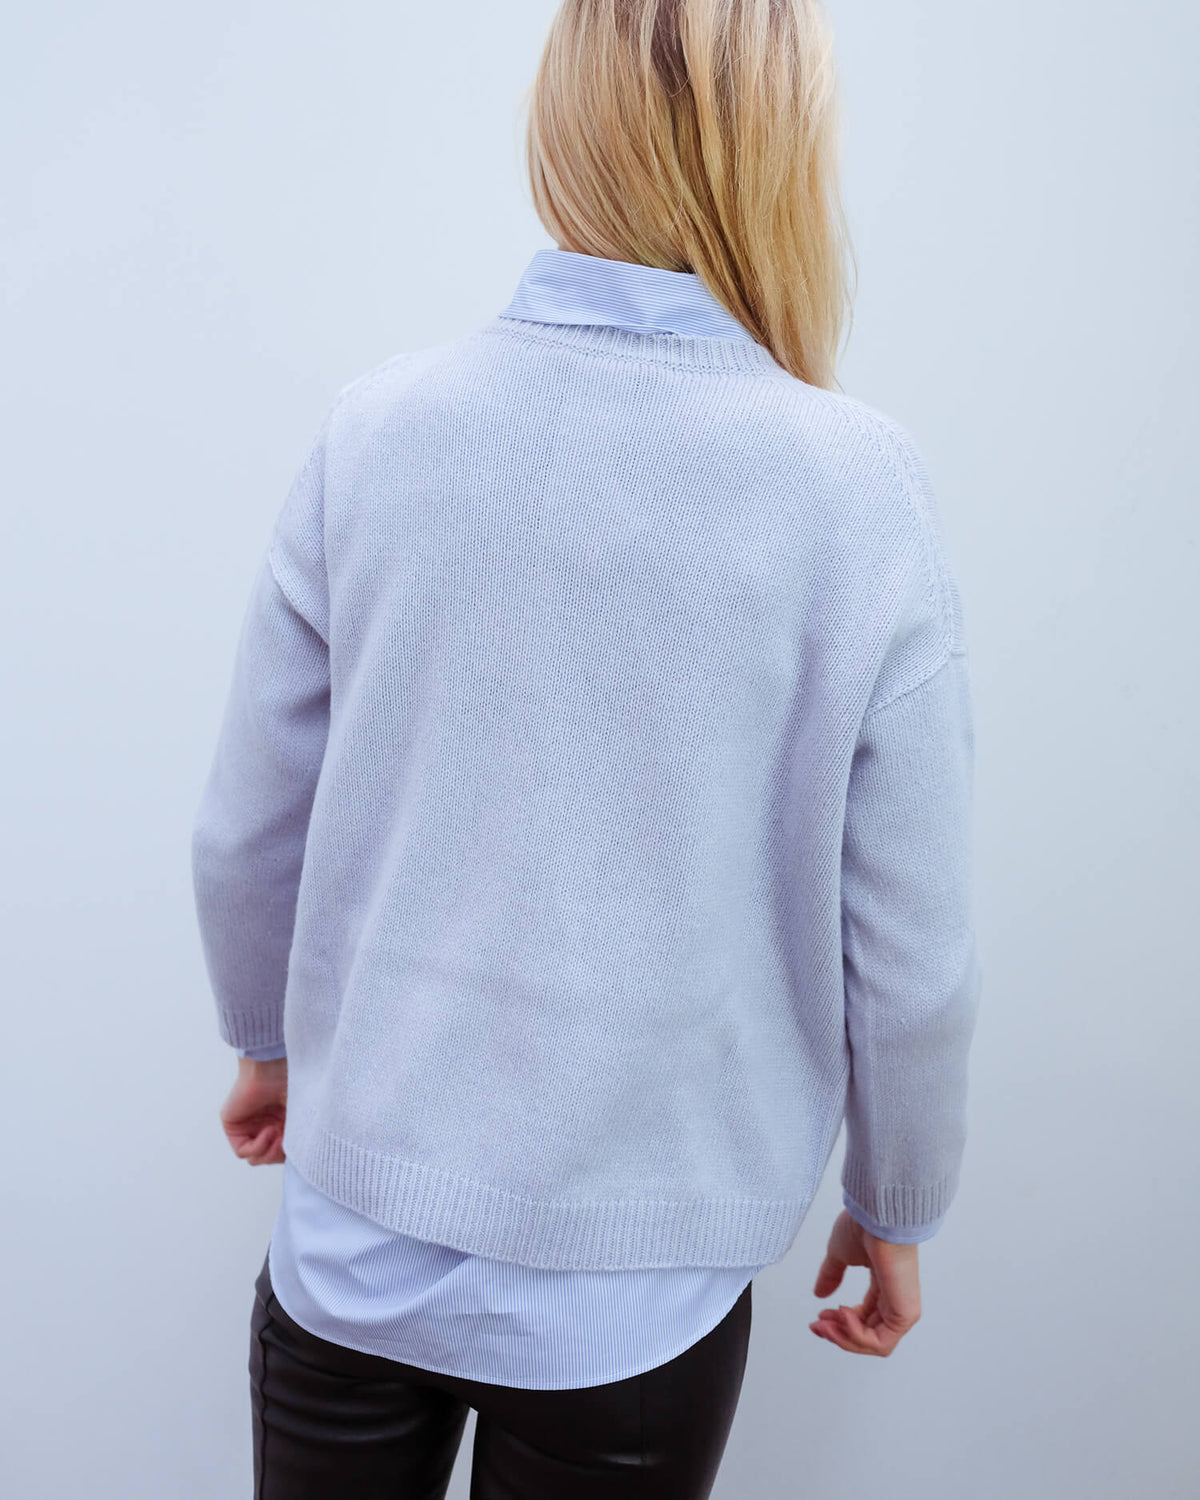 MM Zoraide cashmere knit in blue